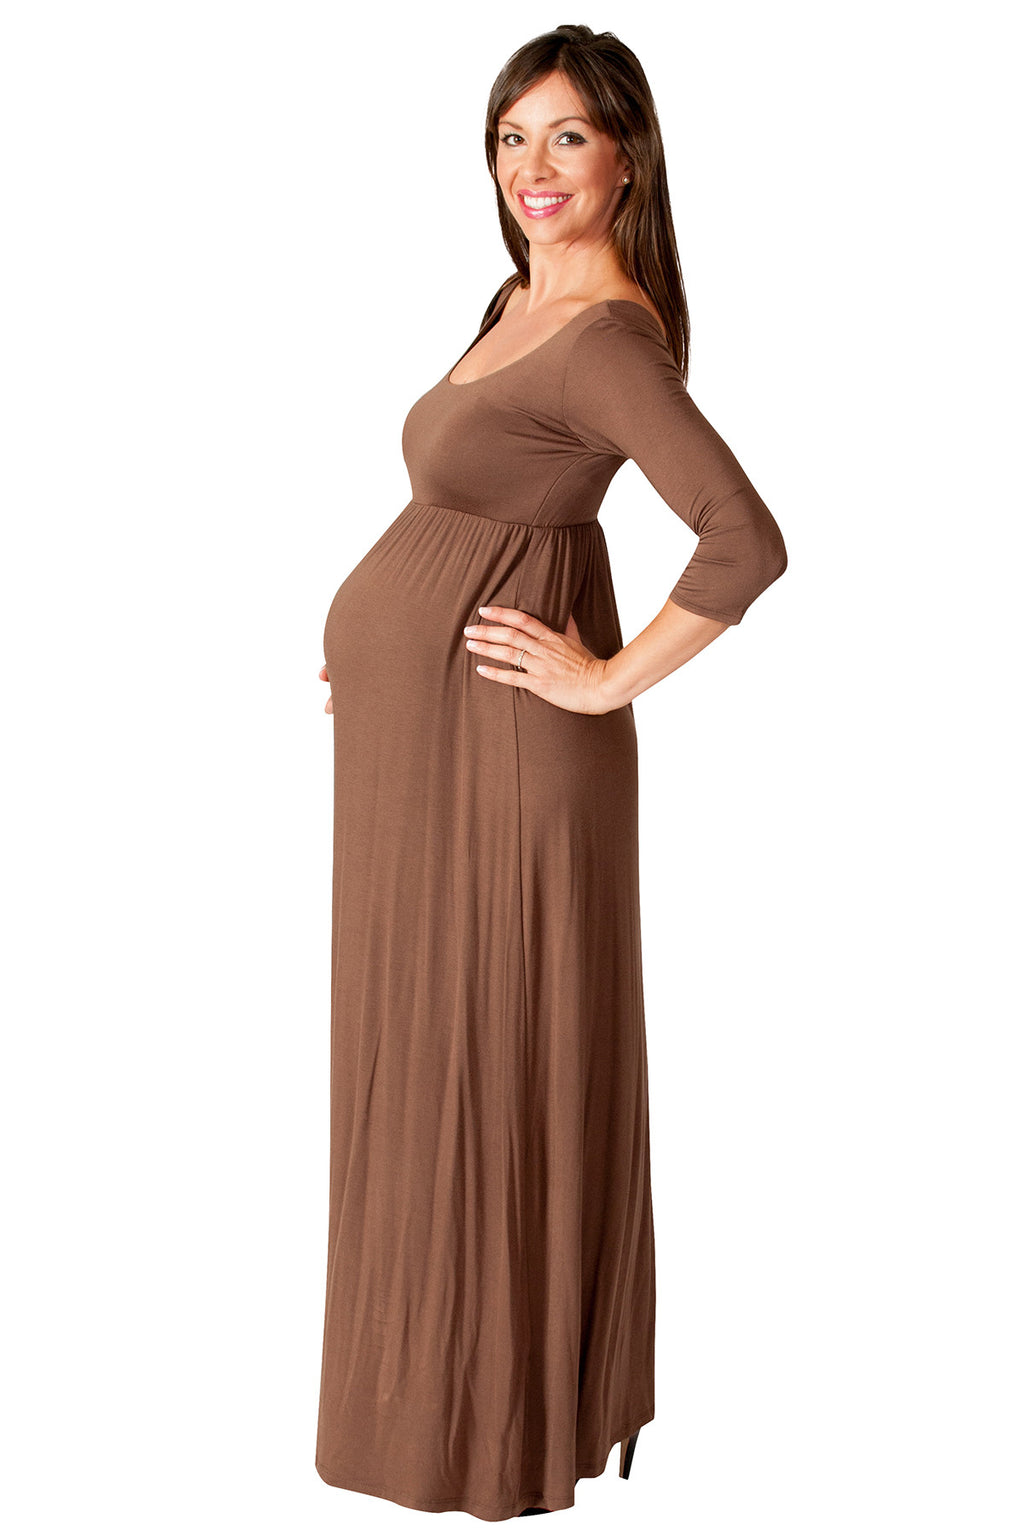 Everyday Maternity Dresses Mommylicious